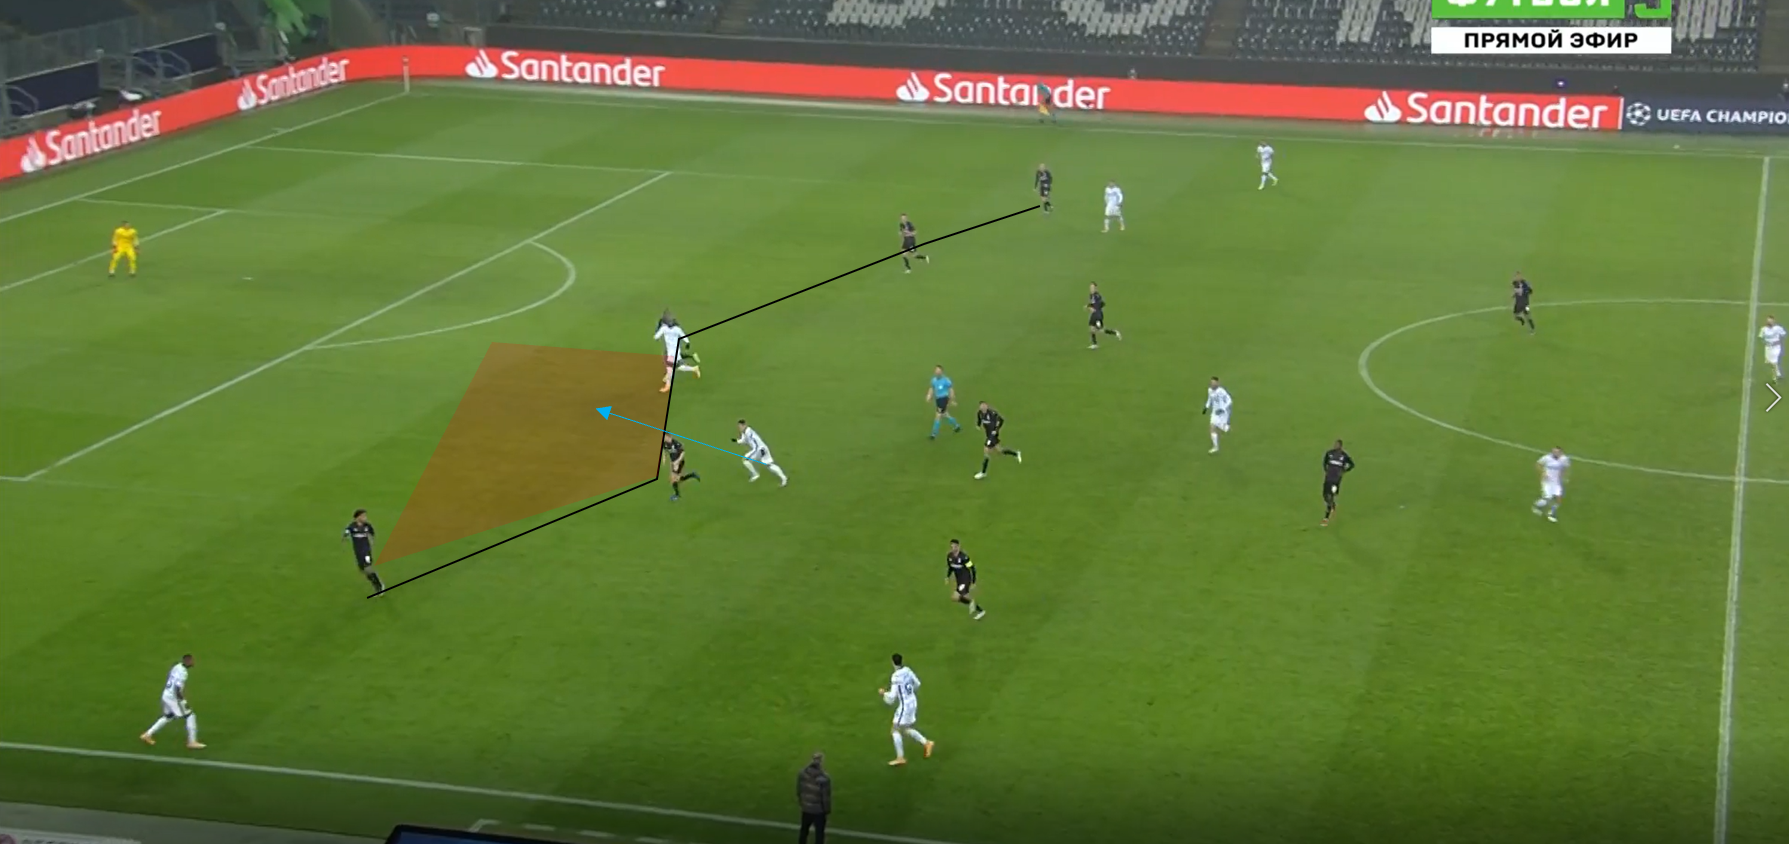 UEFA Champions League 2020/21: Borussia Monchengladbach vs Inter- tactical analysis tactics